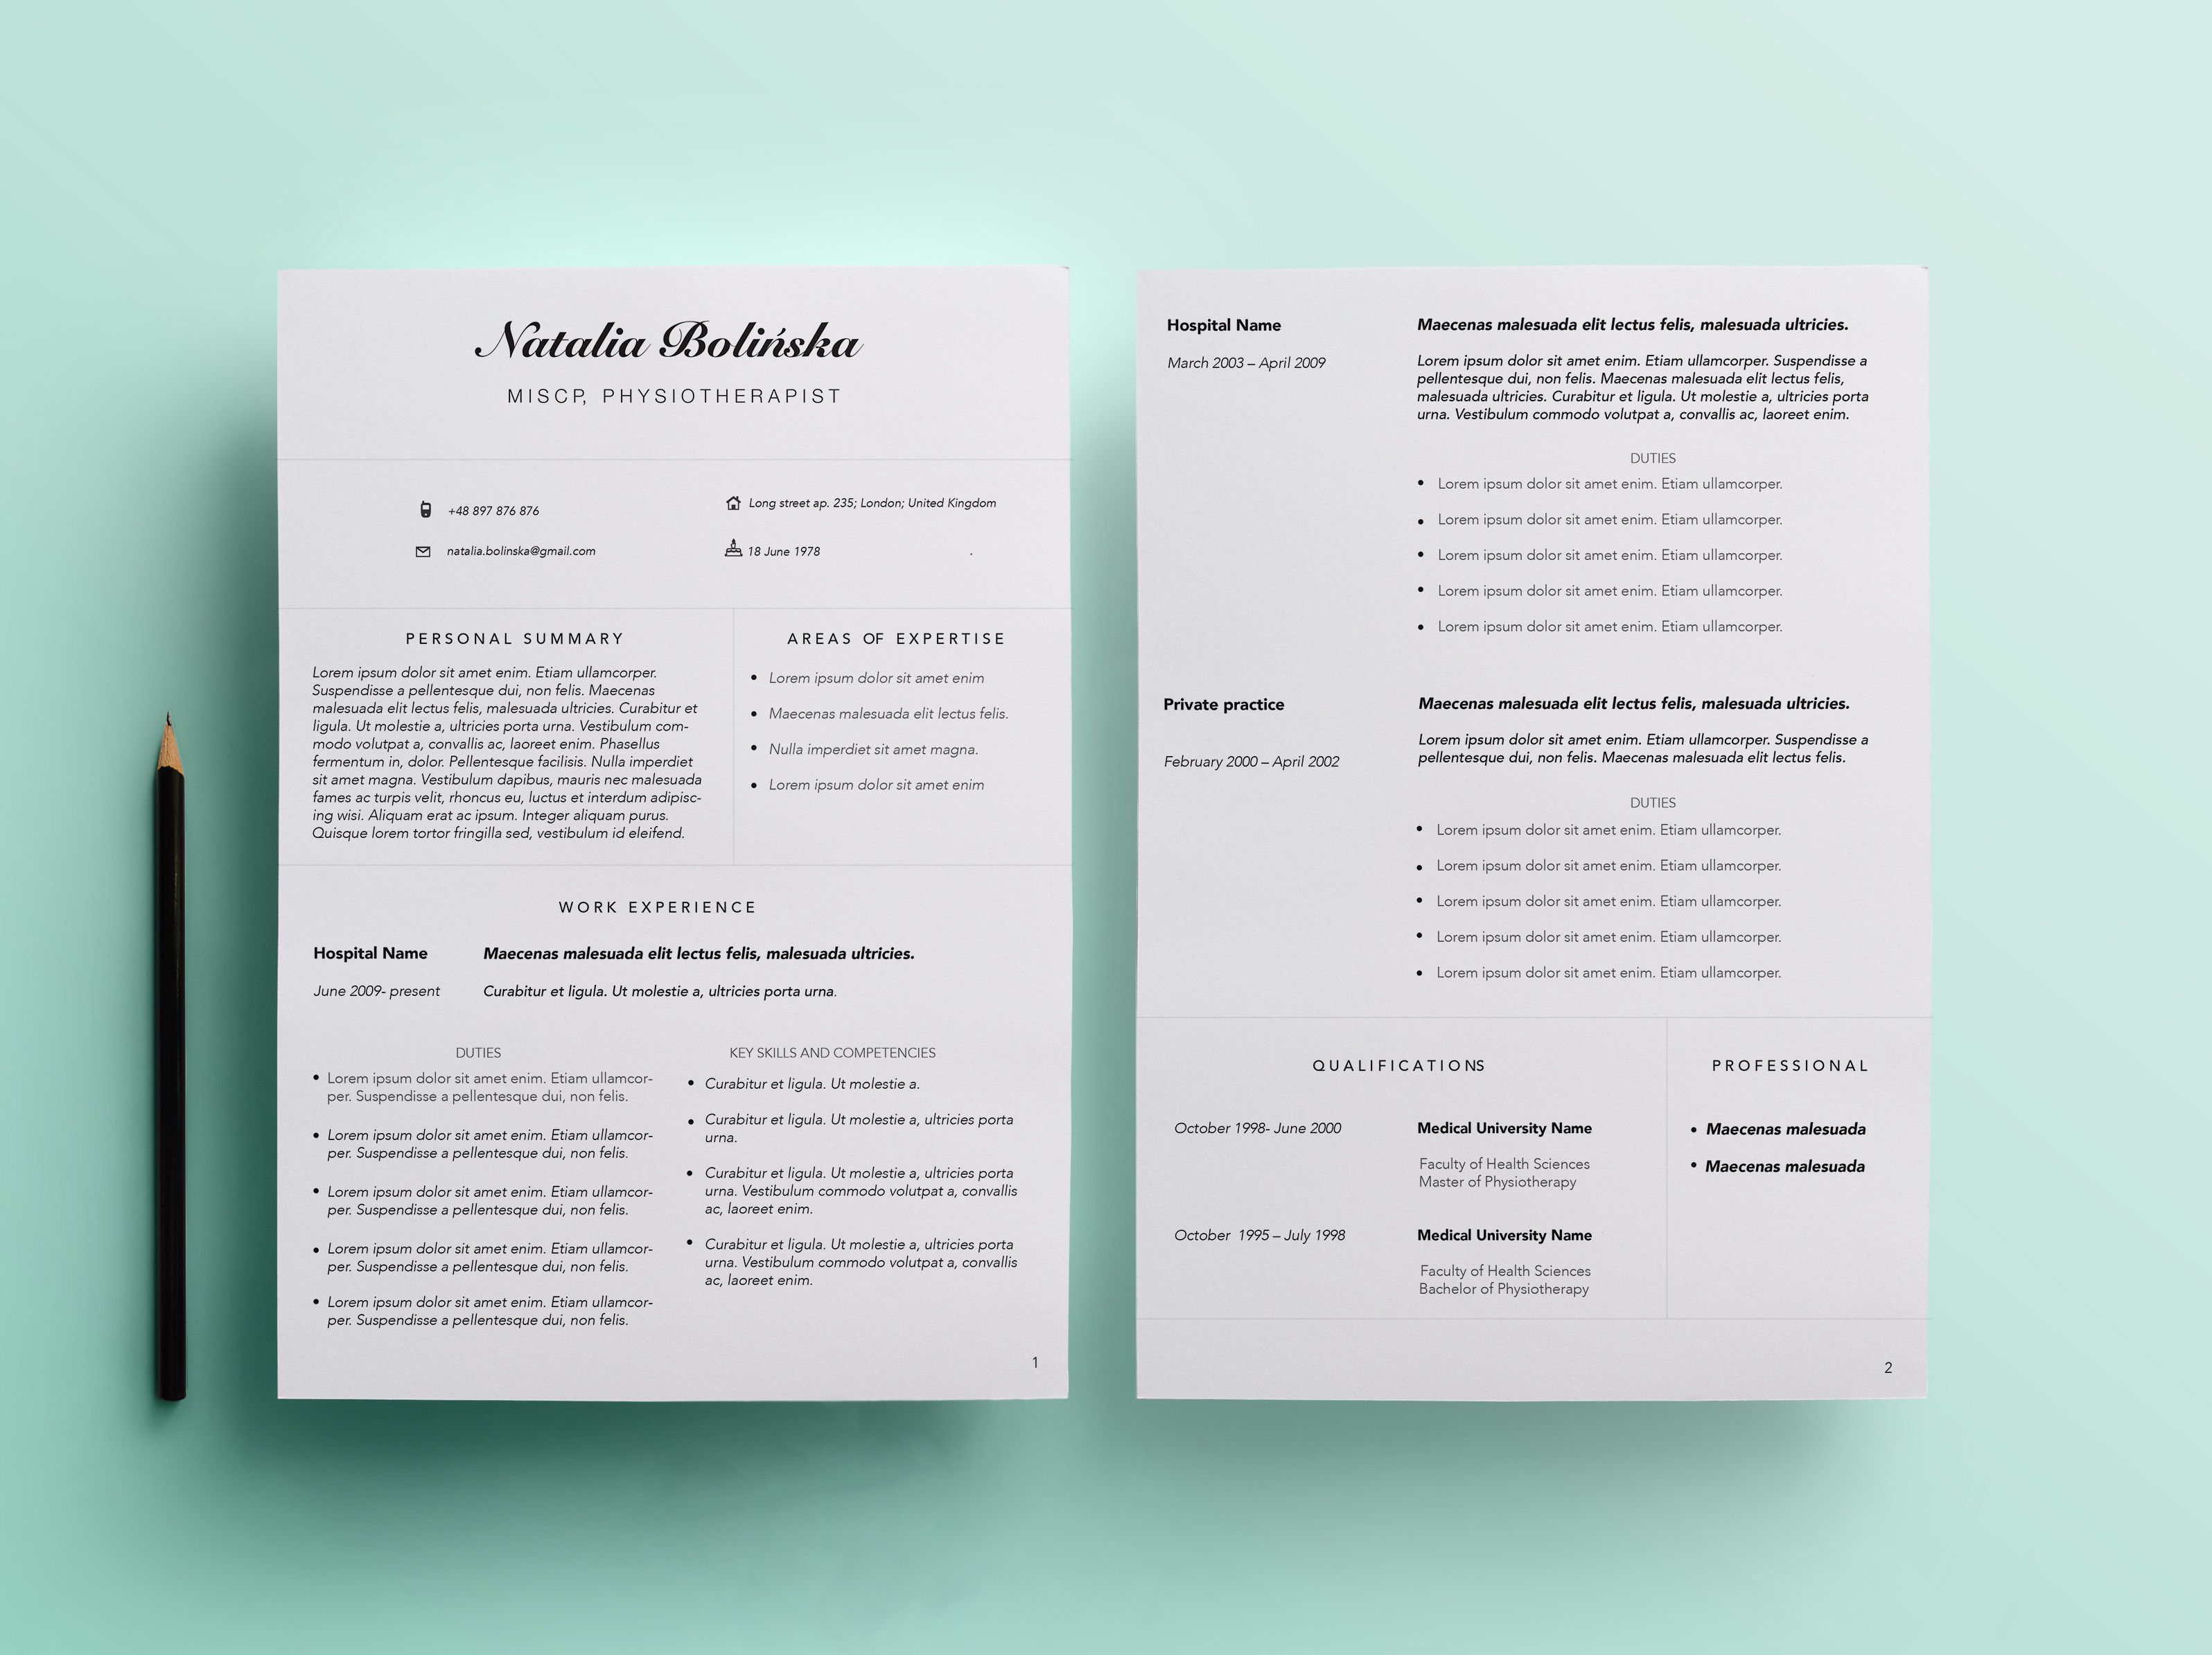 beautiful resume for physiotherapist  looking for similar one  find our shop on etsy